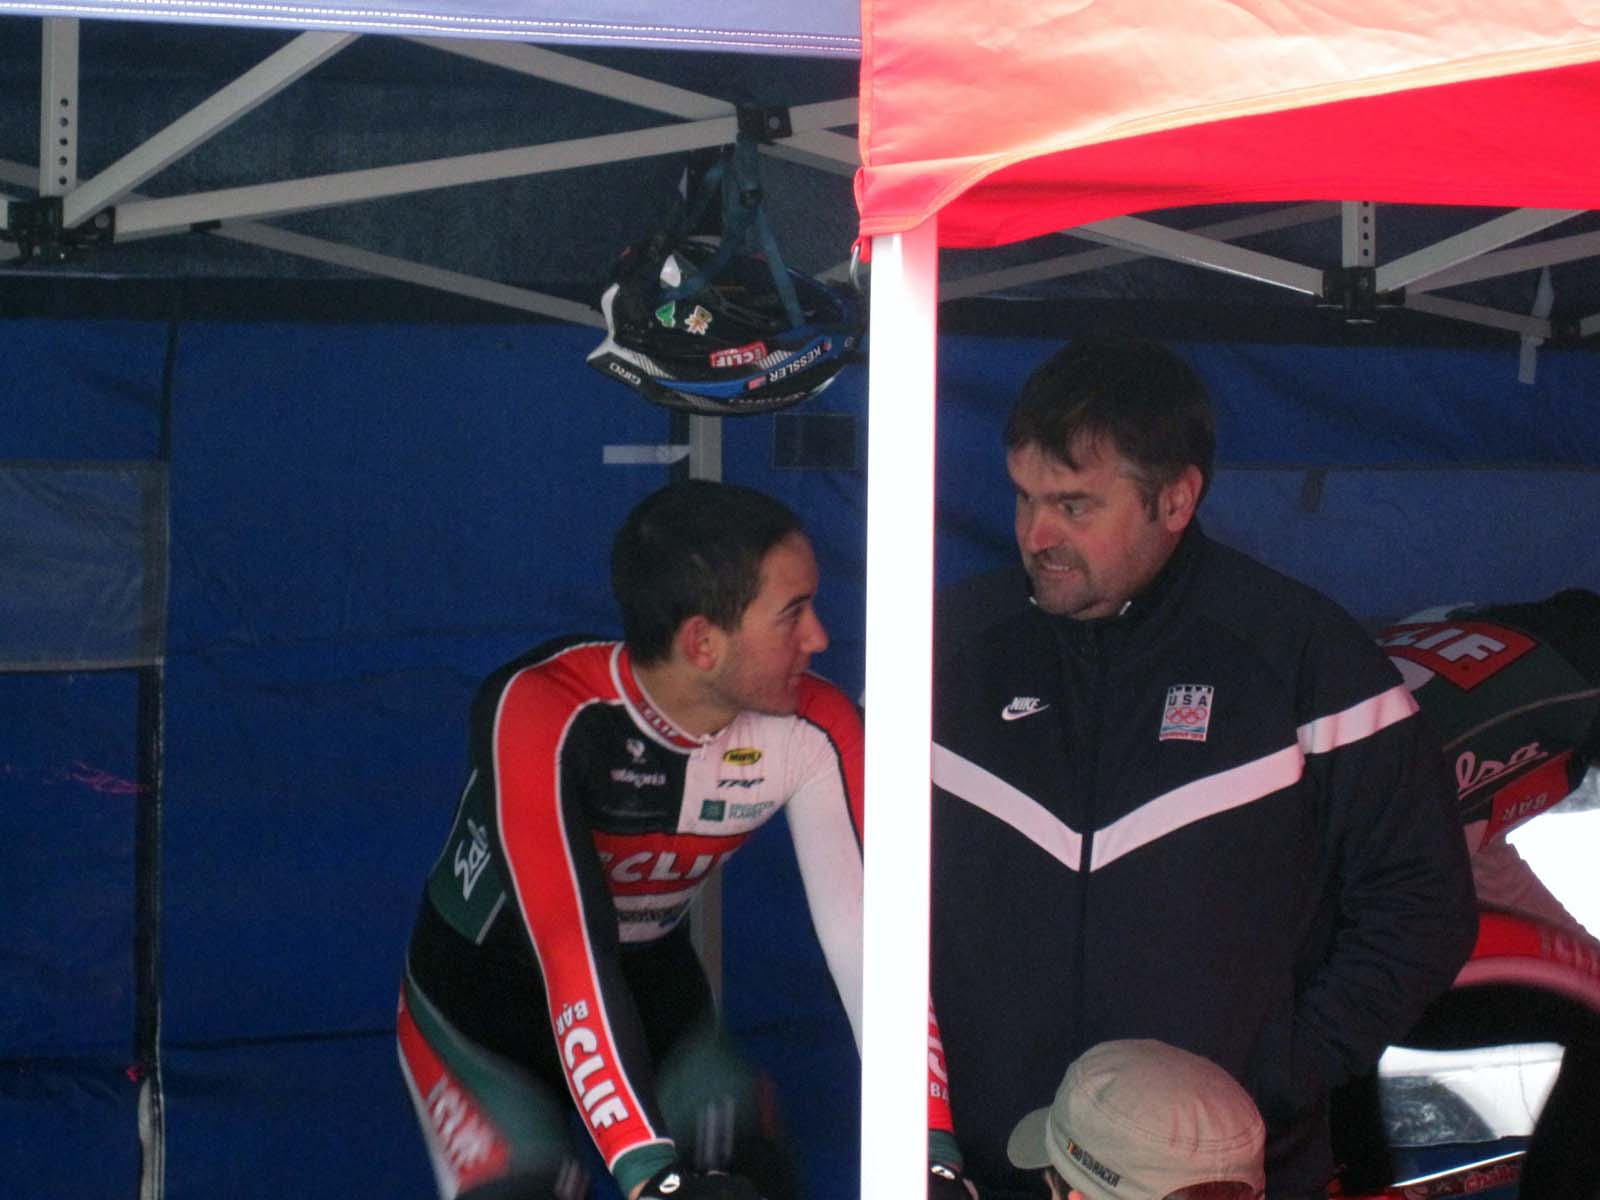 Chris Fox, an affable soigneur, keeps the riders in good spirits. ? Nathan Phillips